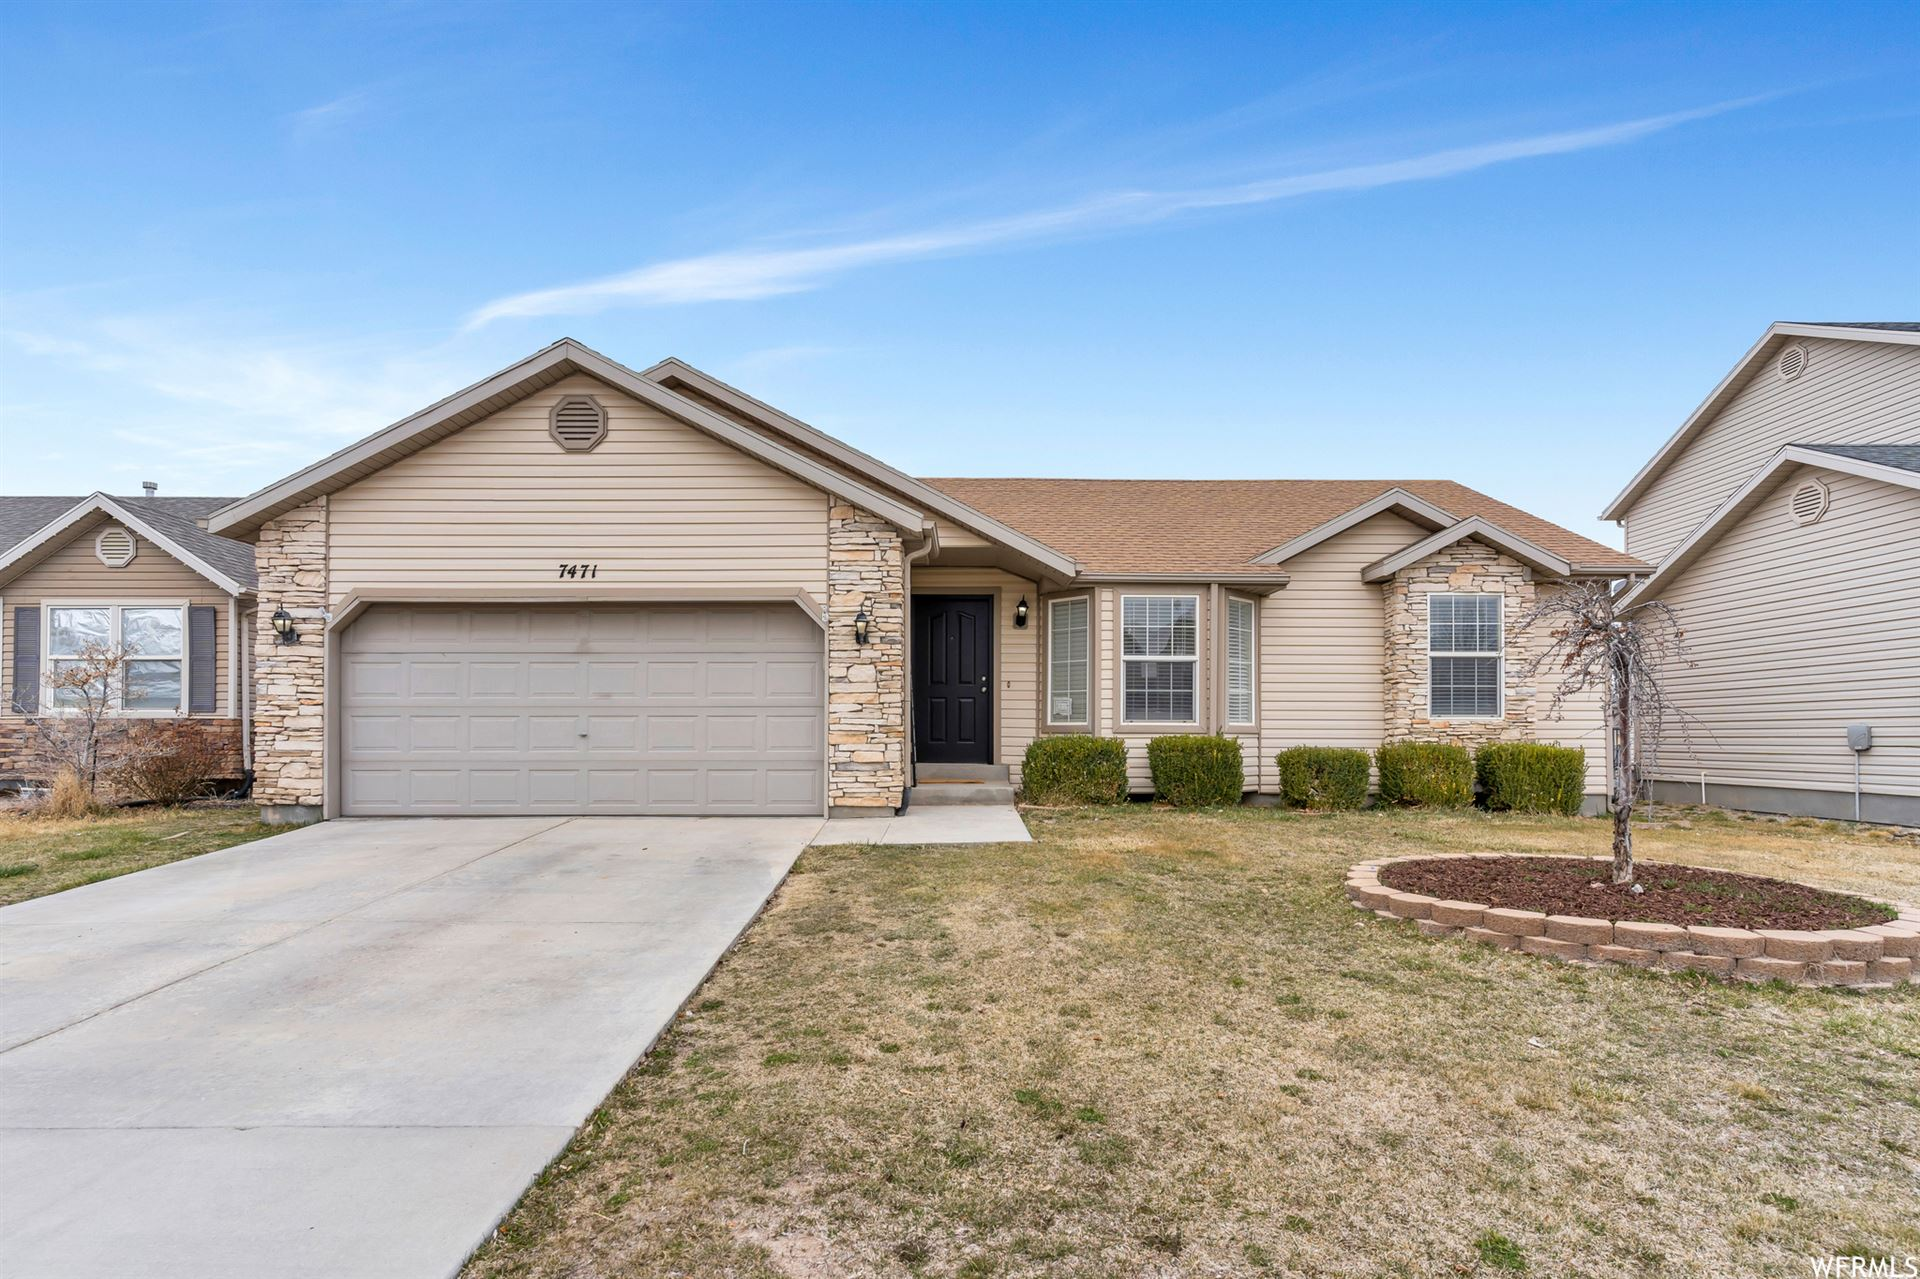 Photo of 7471 N RED PINE DR, Eagle Mountain, UT 84005 (MLS # 1731968)